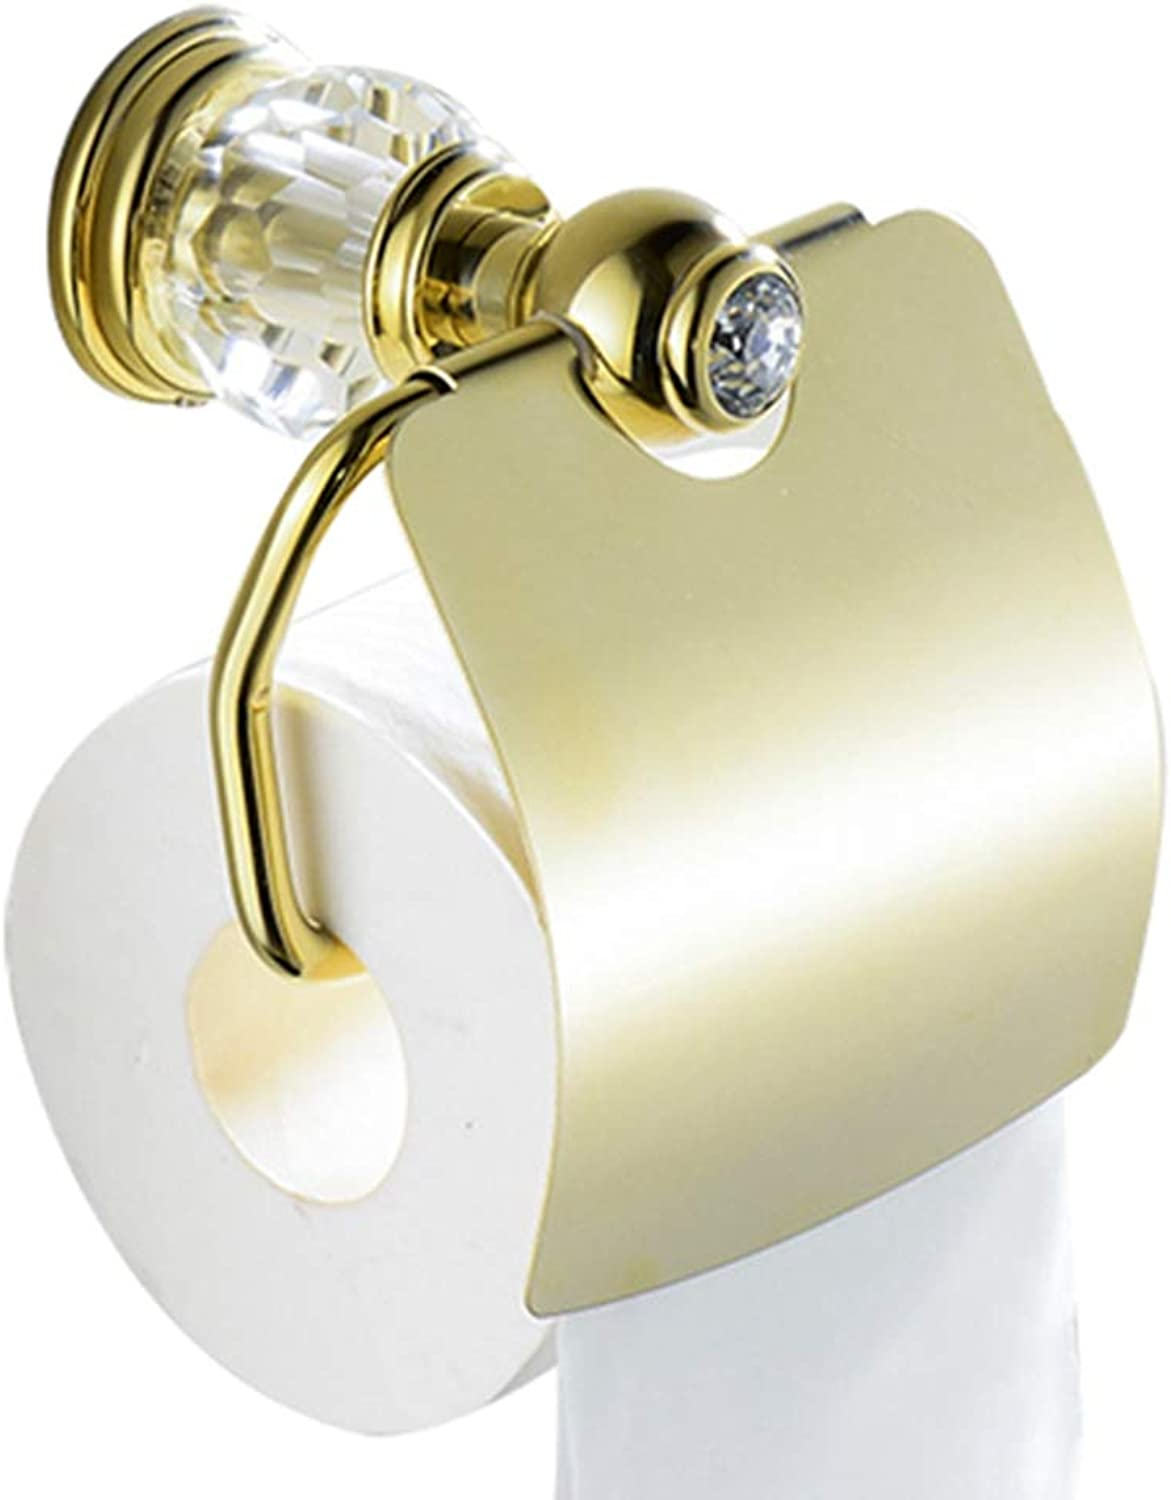 LUDSUY Luxury golden Brass& Crystal Toilet Paper Holder European Royal Wall Mounted Tissue Paper Holder Bathroom Accessories